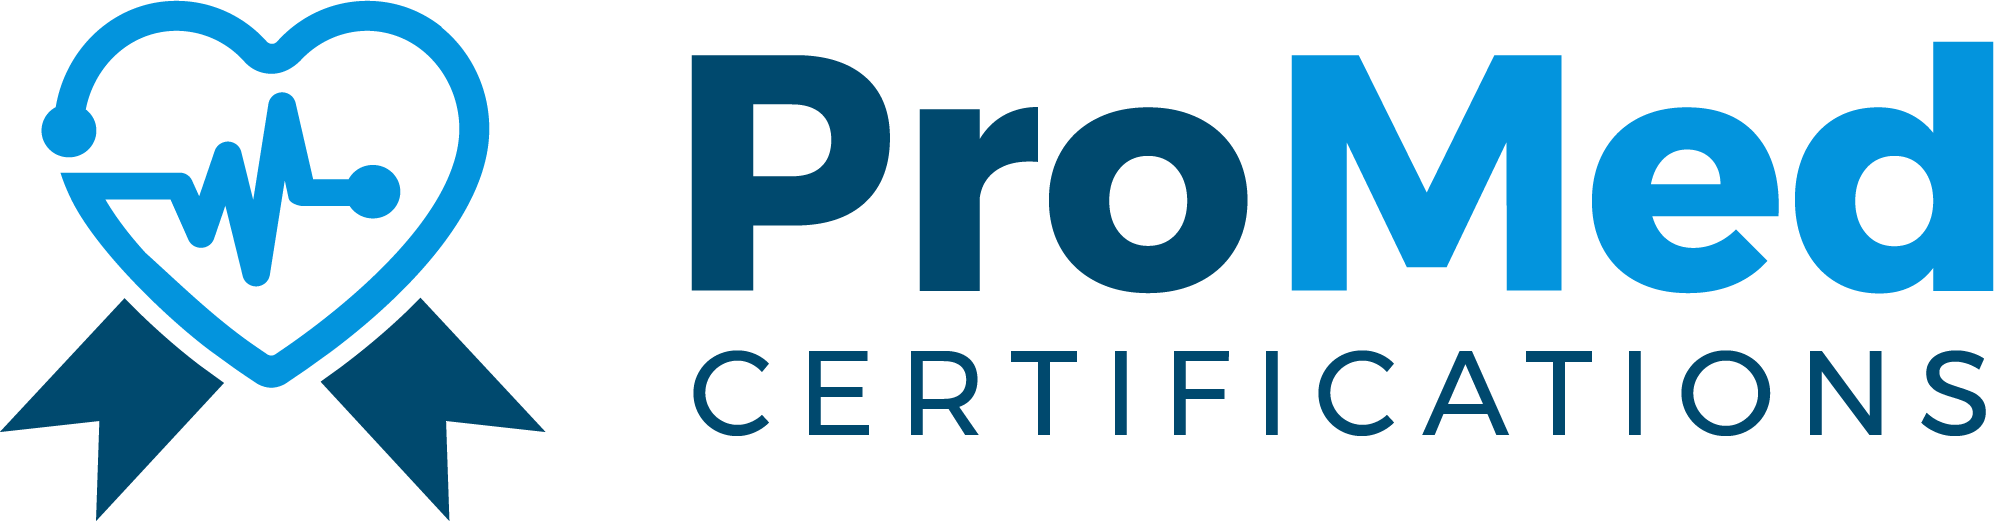 Promed certifications why promed certifications is the best way what makes certifying and recertifying through promed certifications so great xflitez Image collections